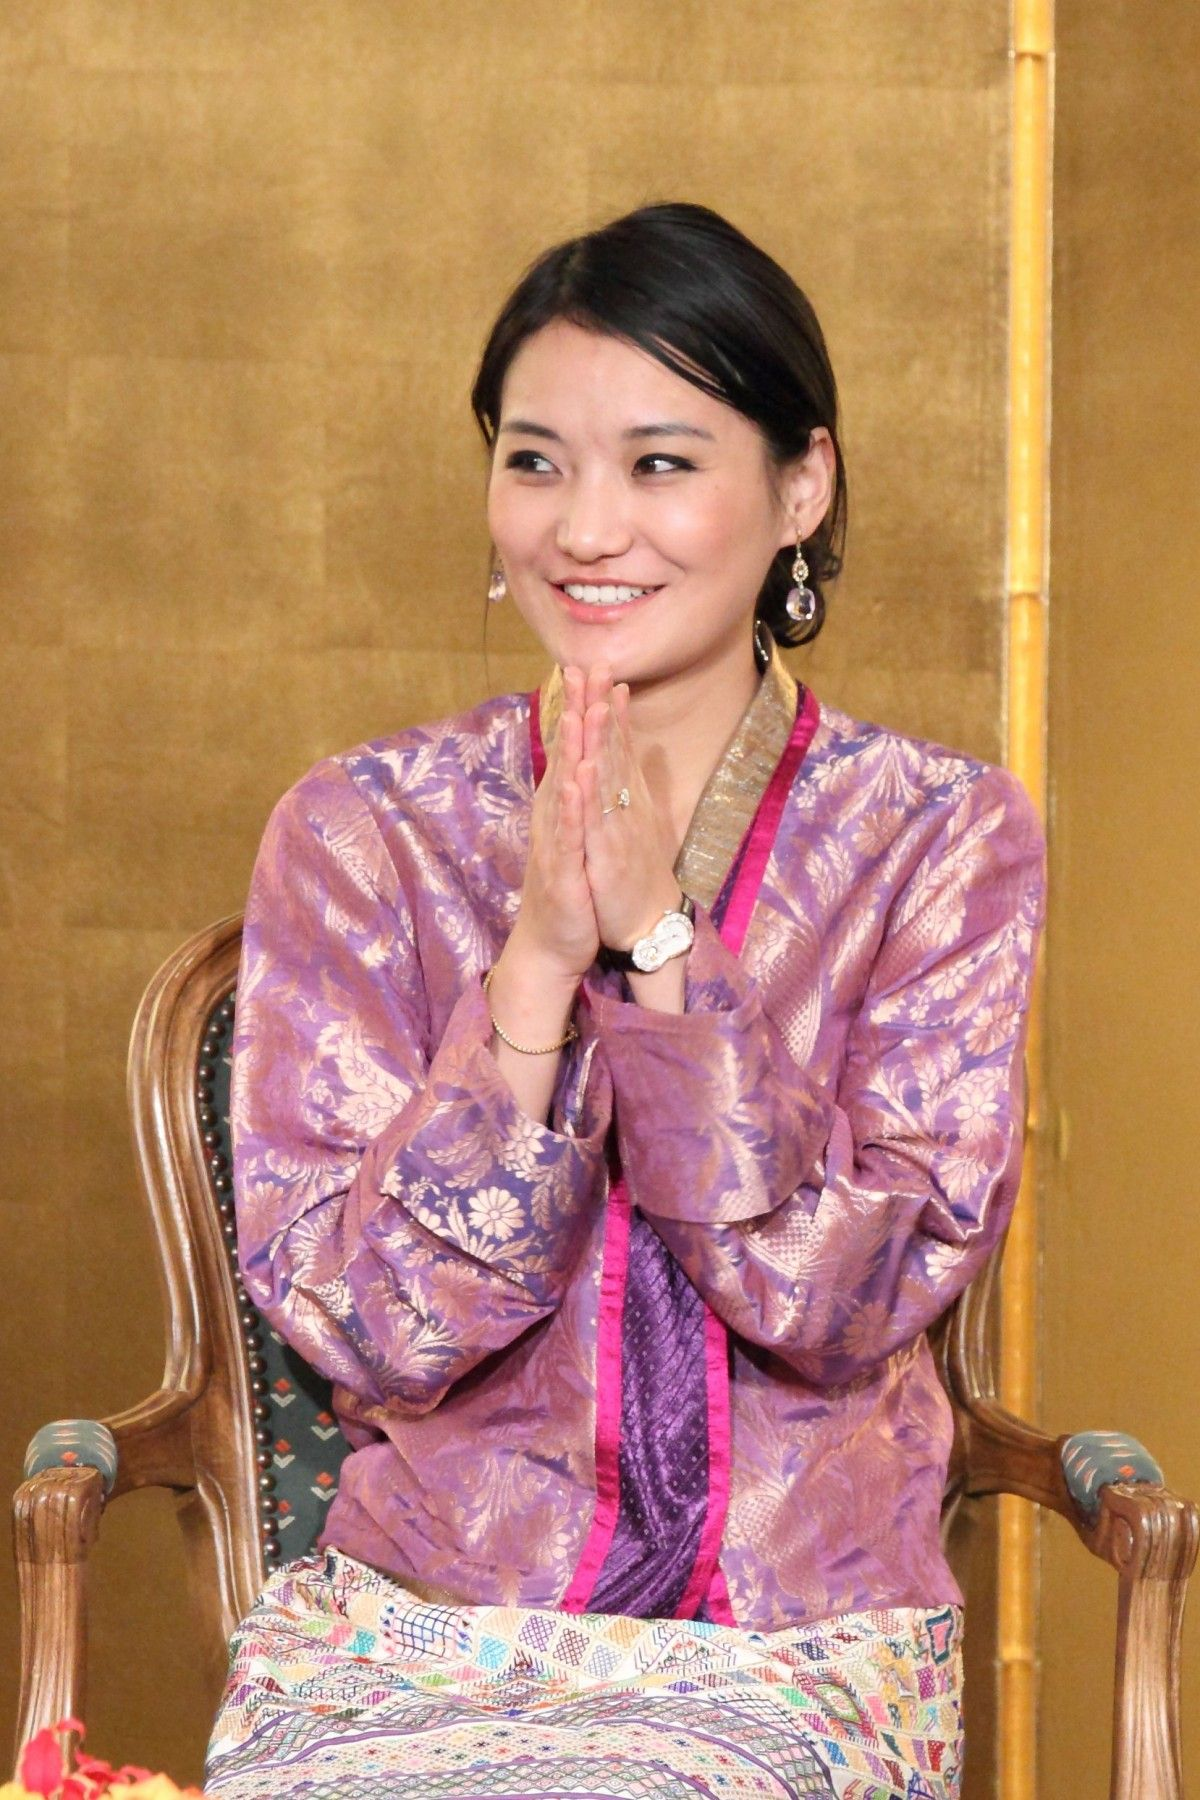 Bhutan S Queen Jetsun Pema Wangchuck Asian Royals